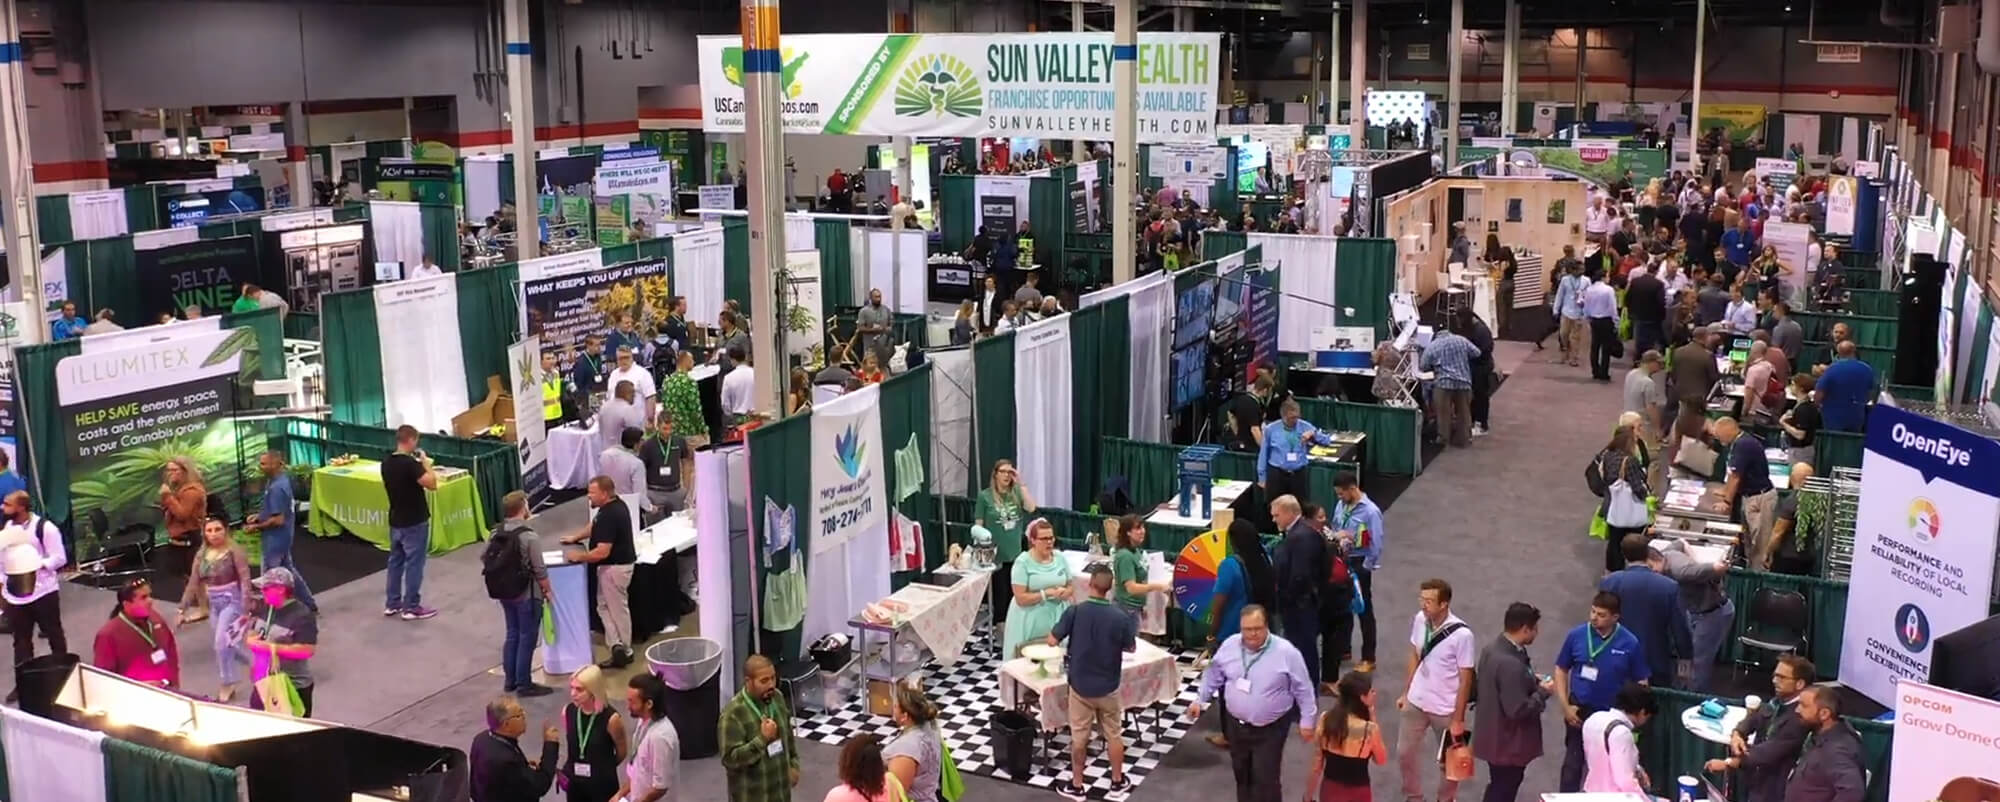 CannabisIMP Trade Show for the Marijuana and Cannabis Industry